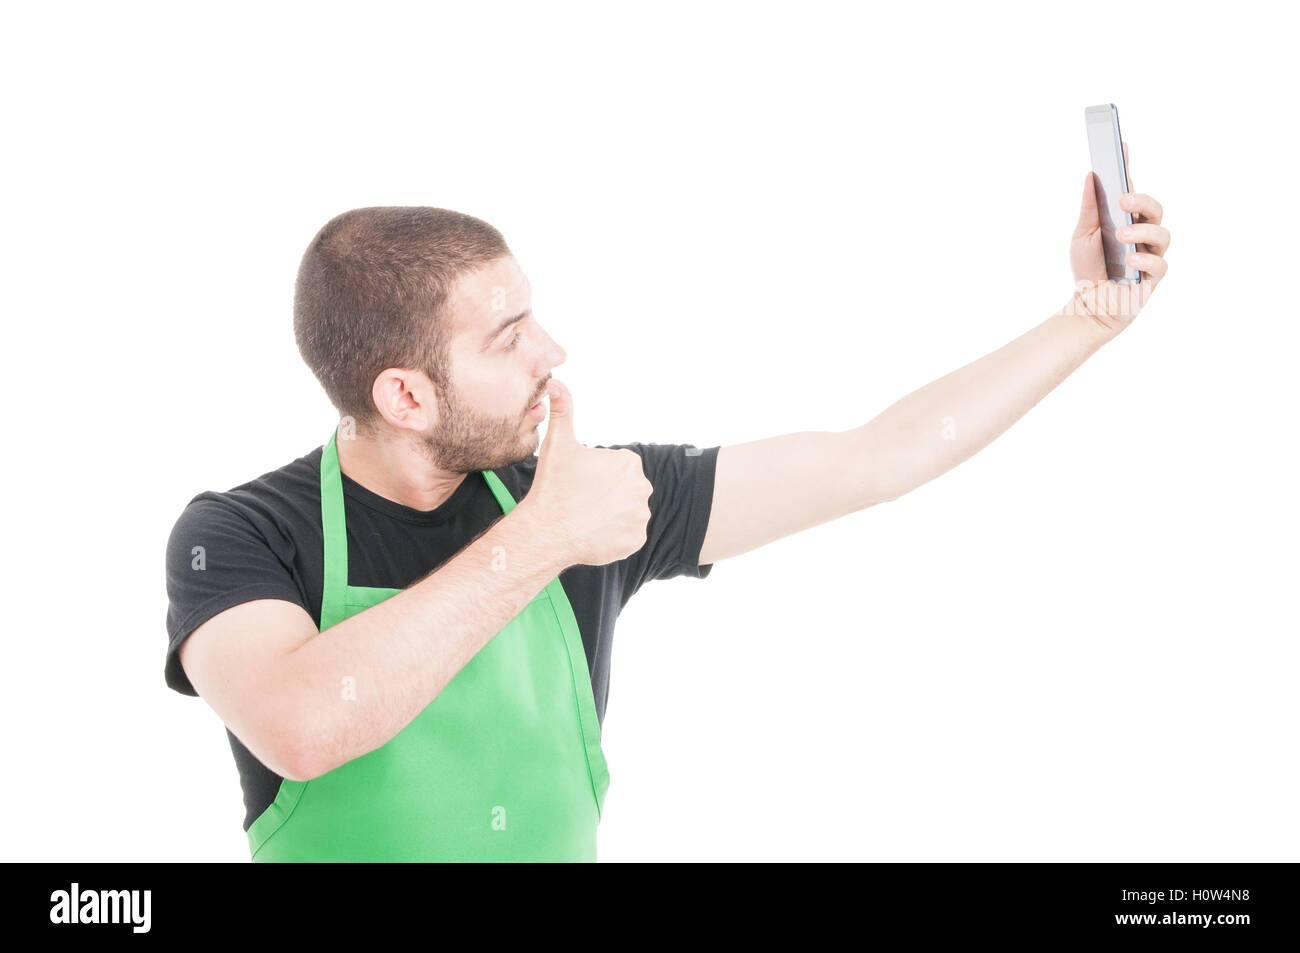 Young supermarket seller making selfie with thumb up gesture isolated on white background with copy text space - Stock Image